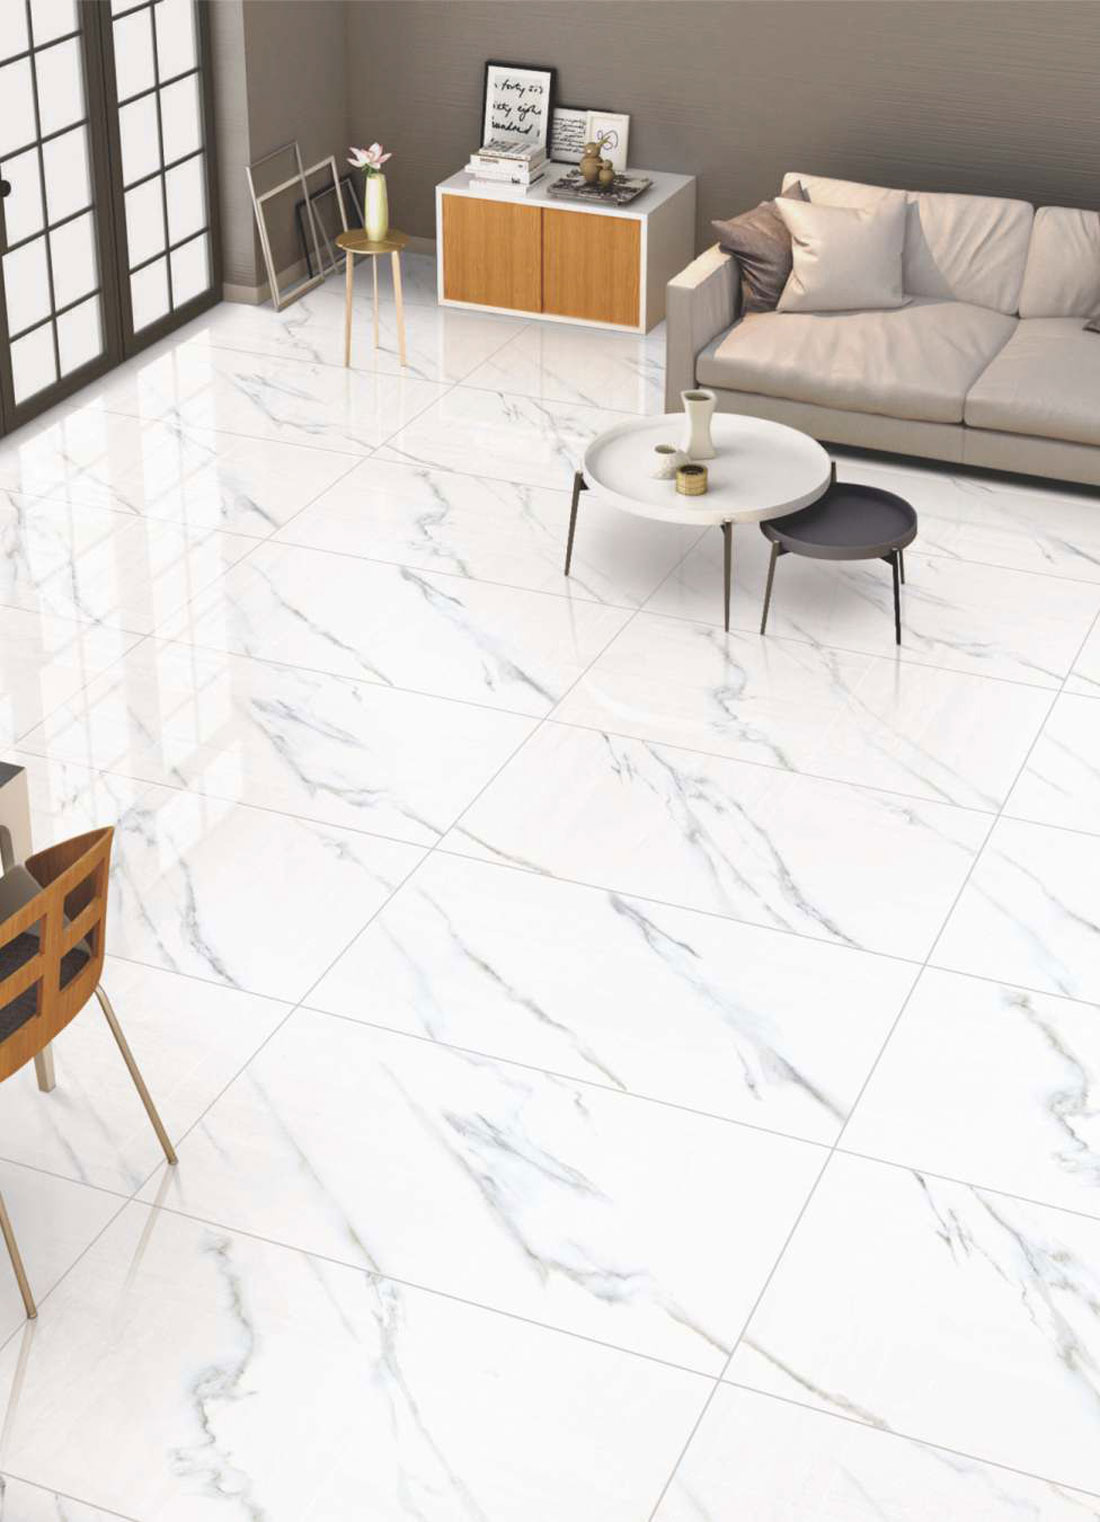 Glazed porcelain tiles hdb